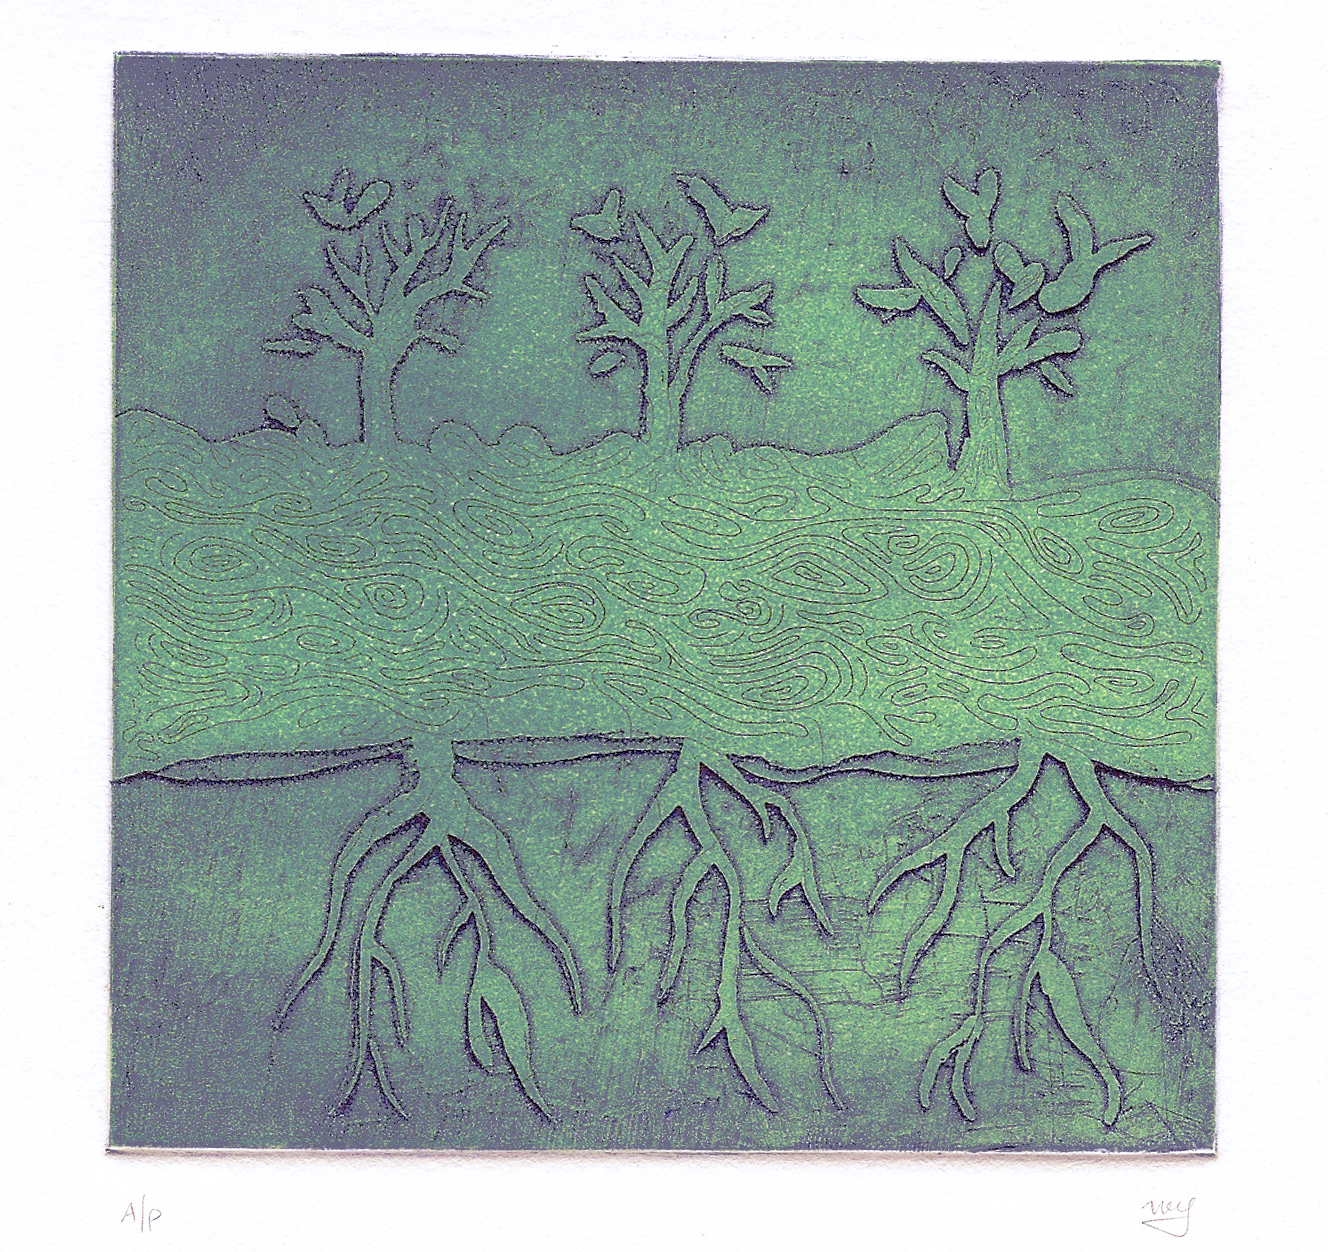 Meirav Ong    |  The Tree that Stands Beyond Space |  Intaglio print on paper